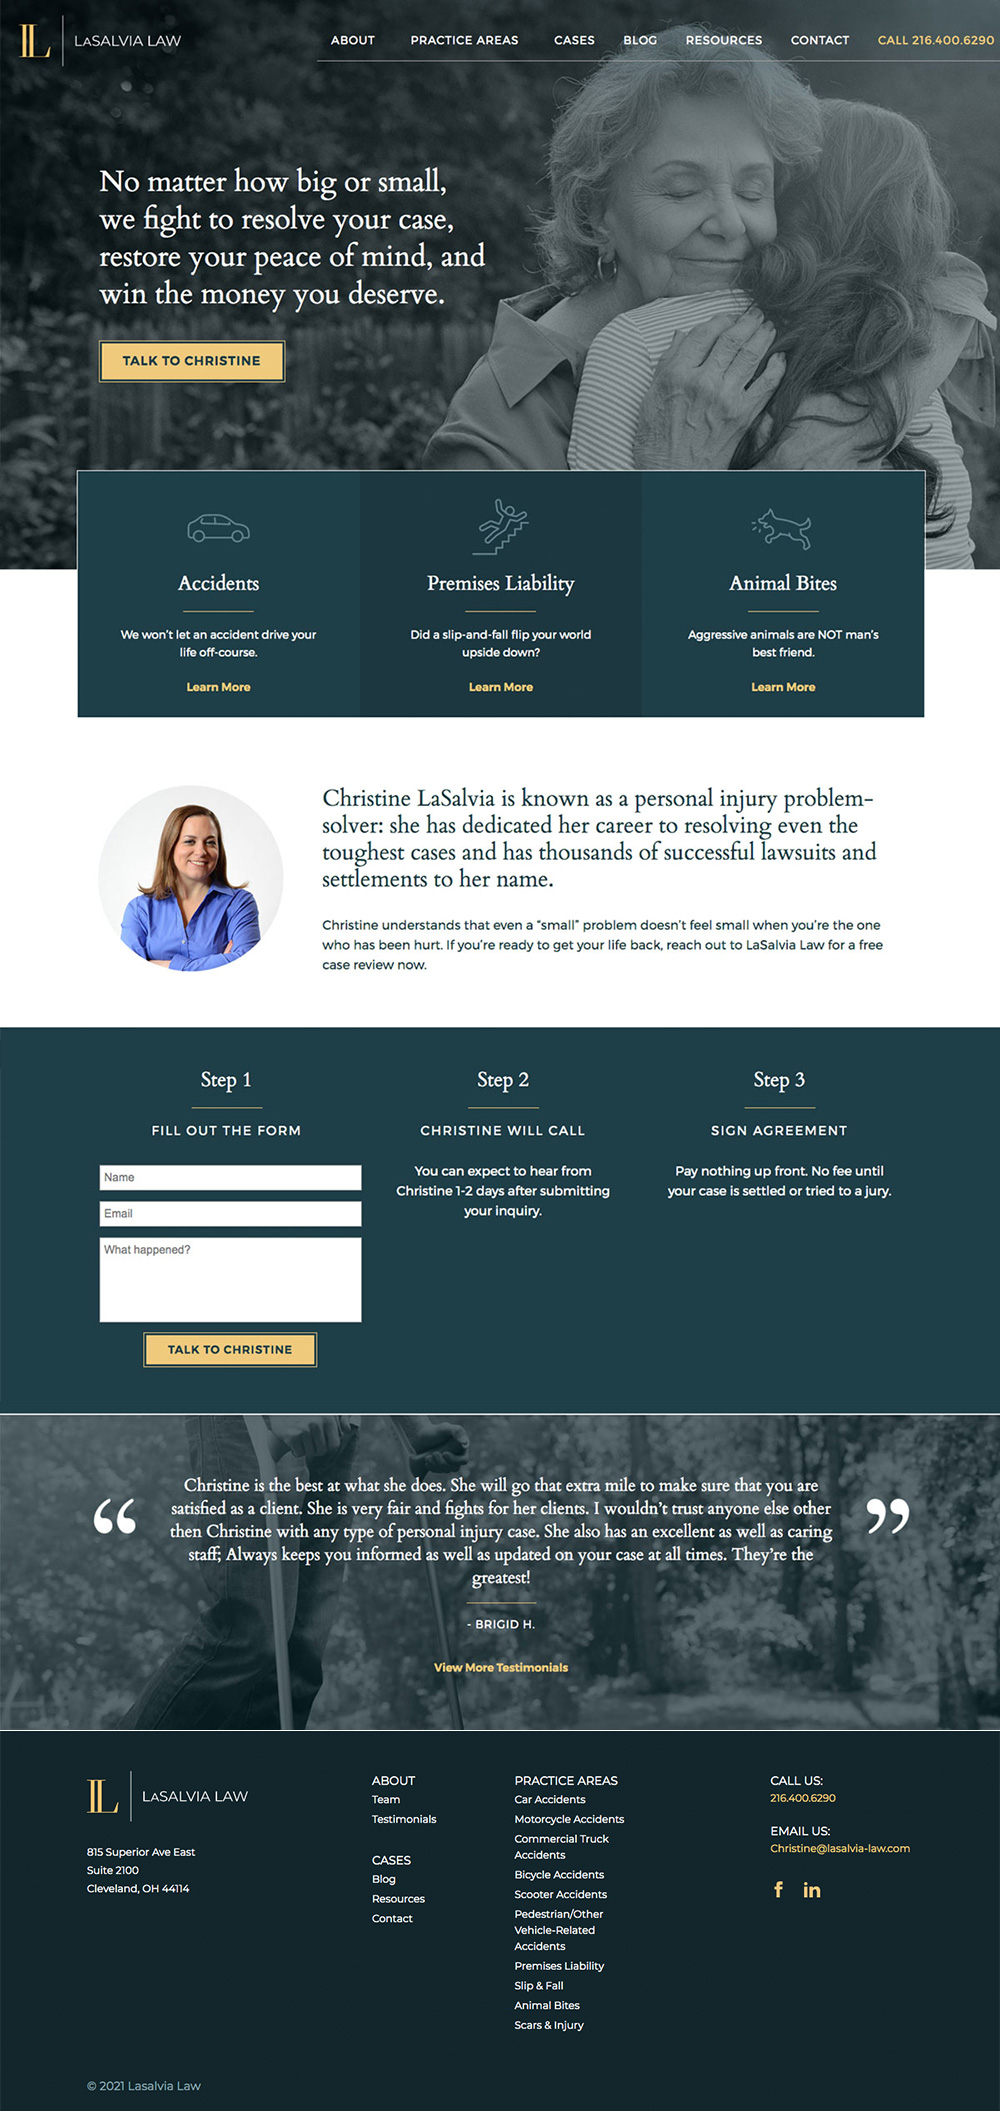 Angelia Becker designed this homepage with Rosenberg Advertising for LaSalvia Law.